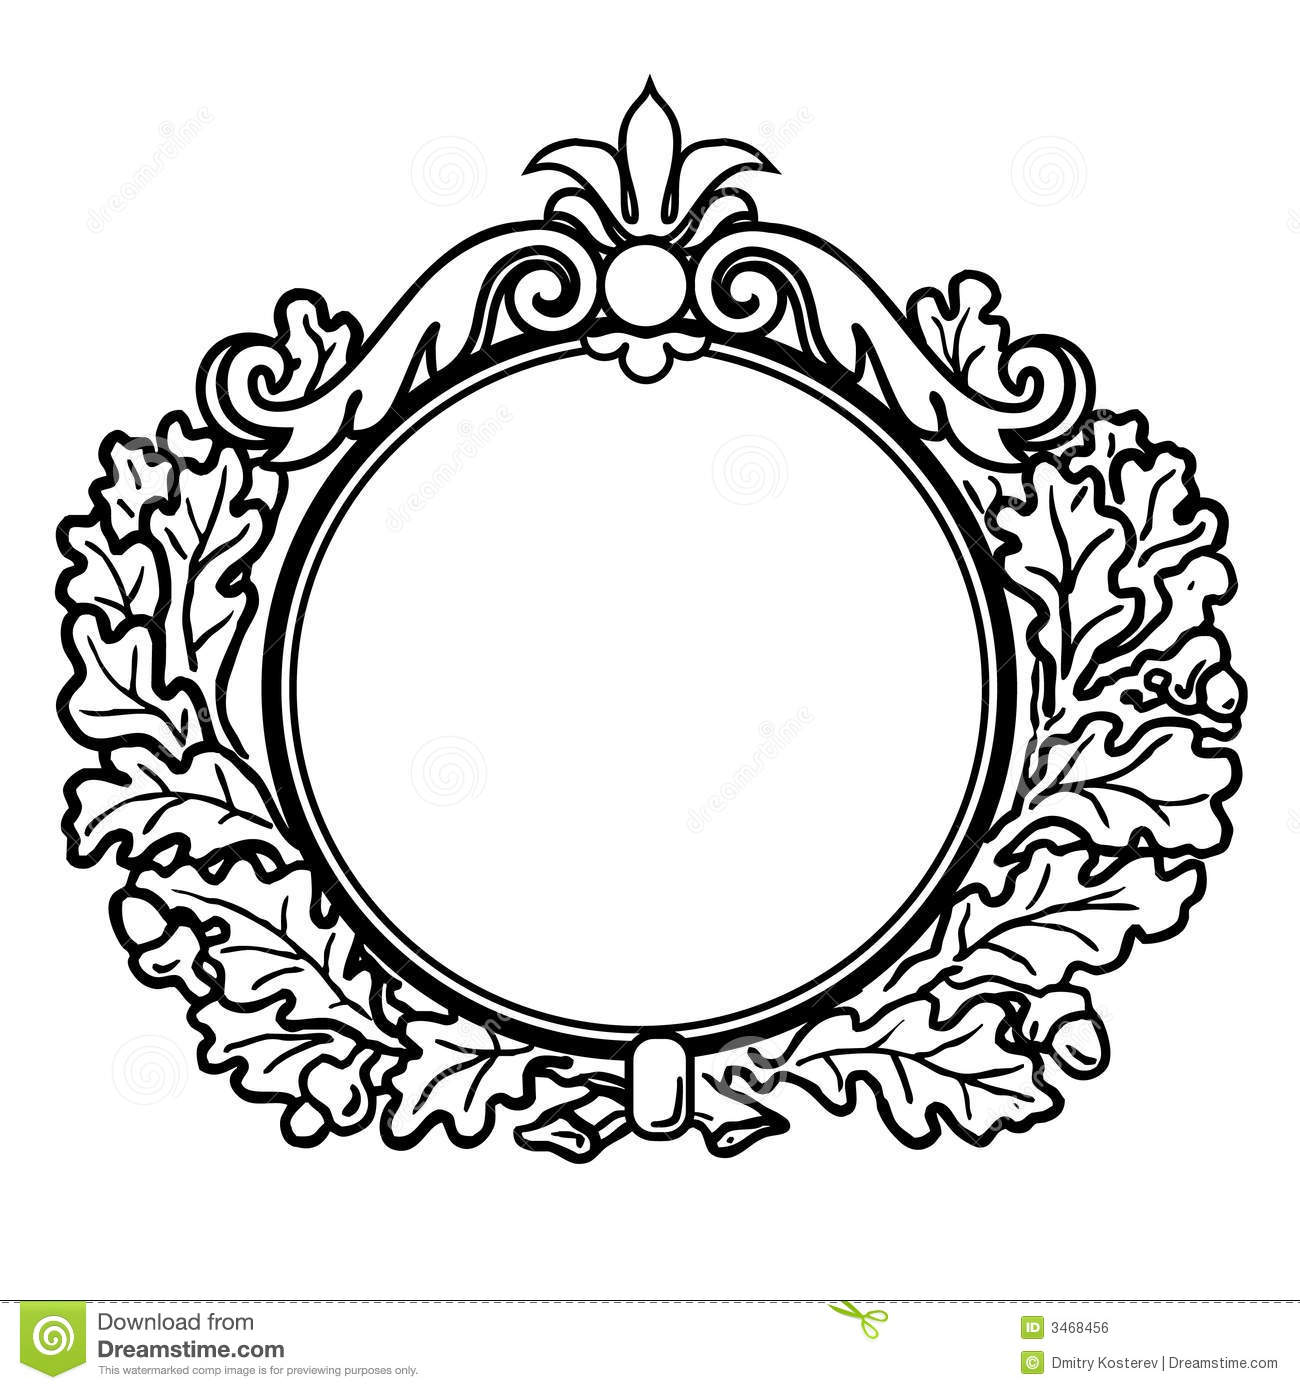 Frame clipart round Borders Clipart Images round%20clipart Panda